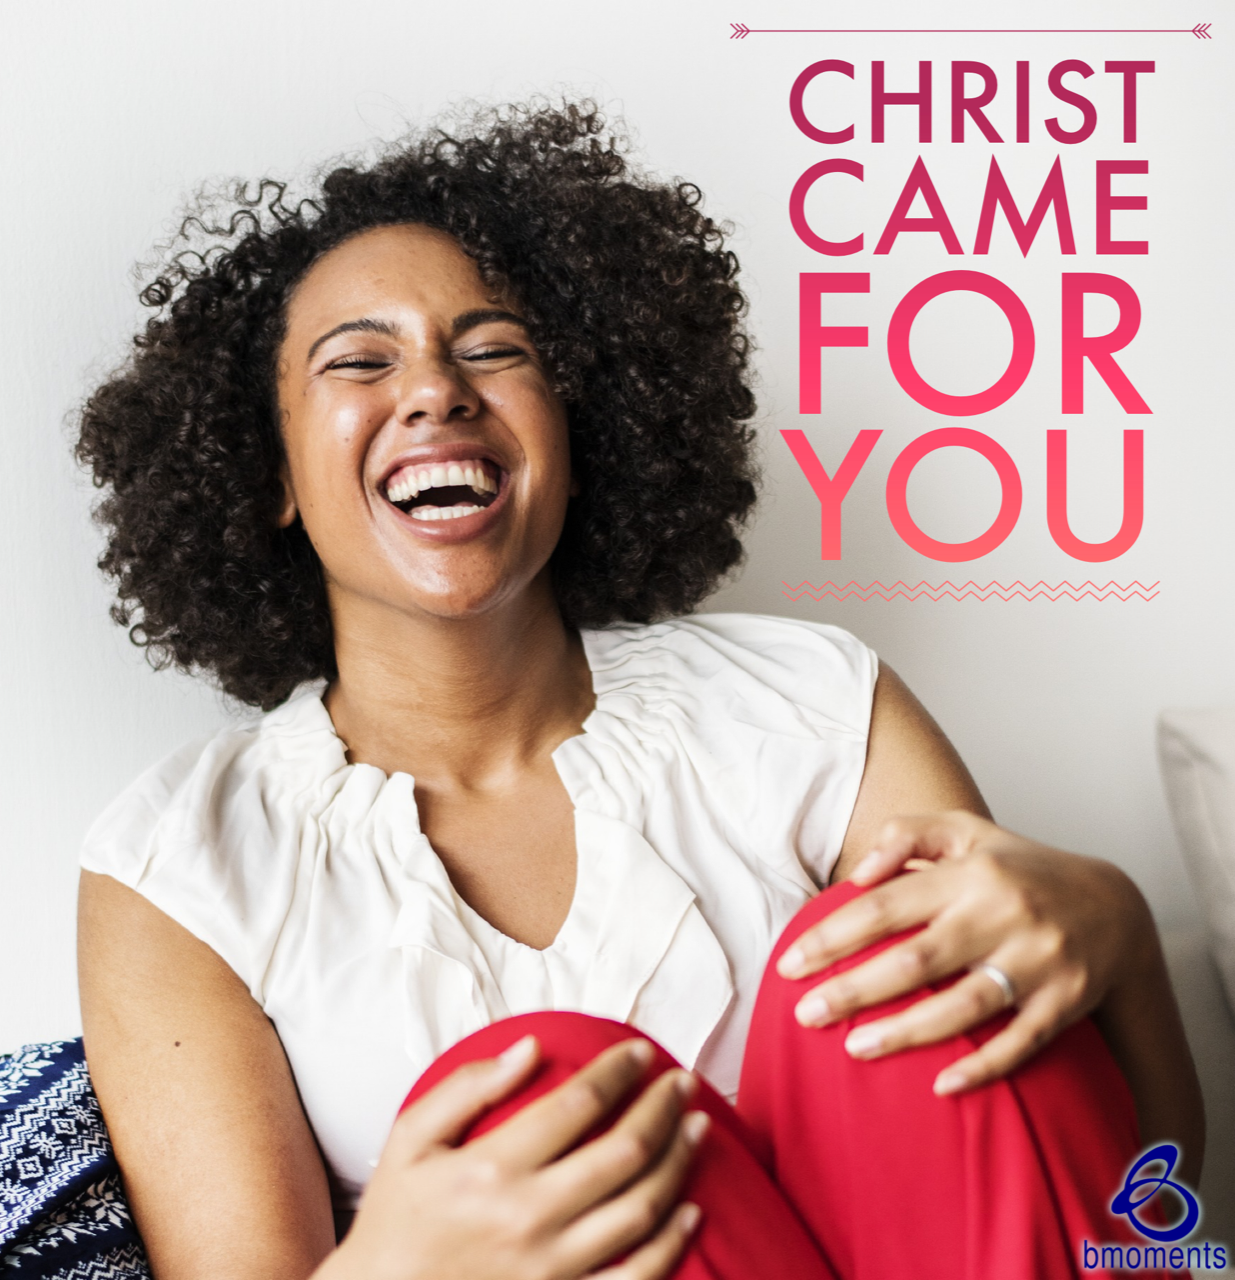 Know That Christ Came for You